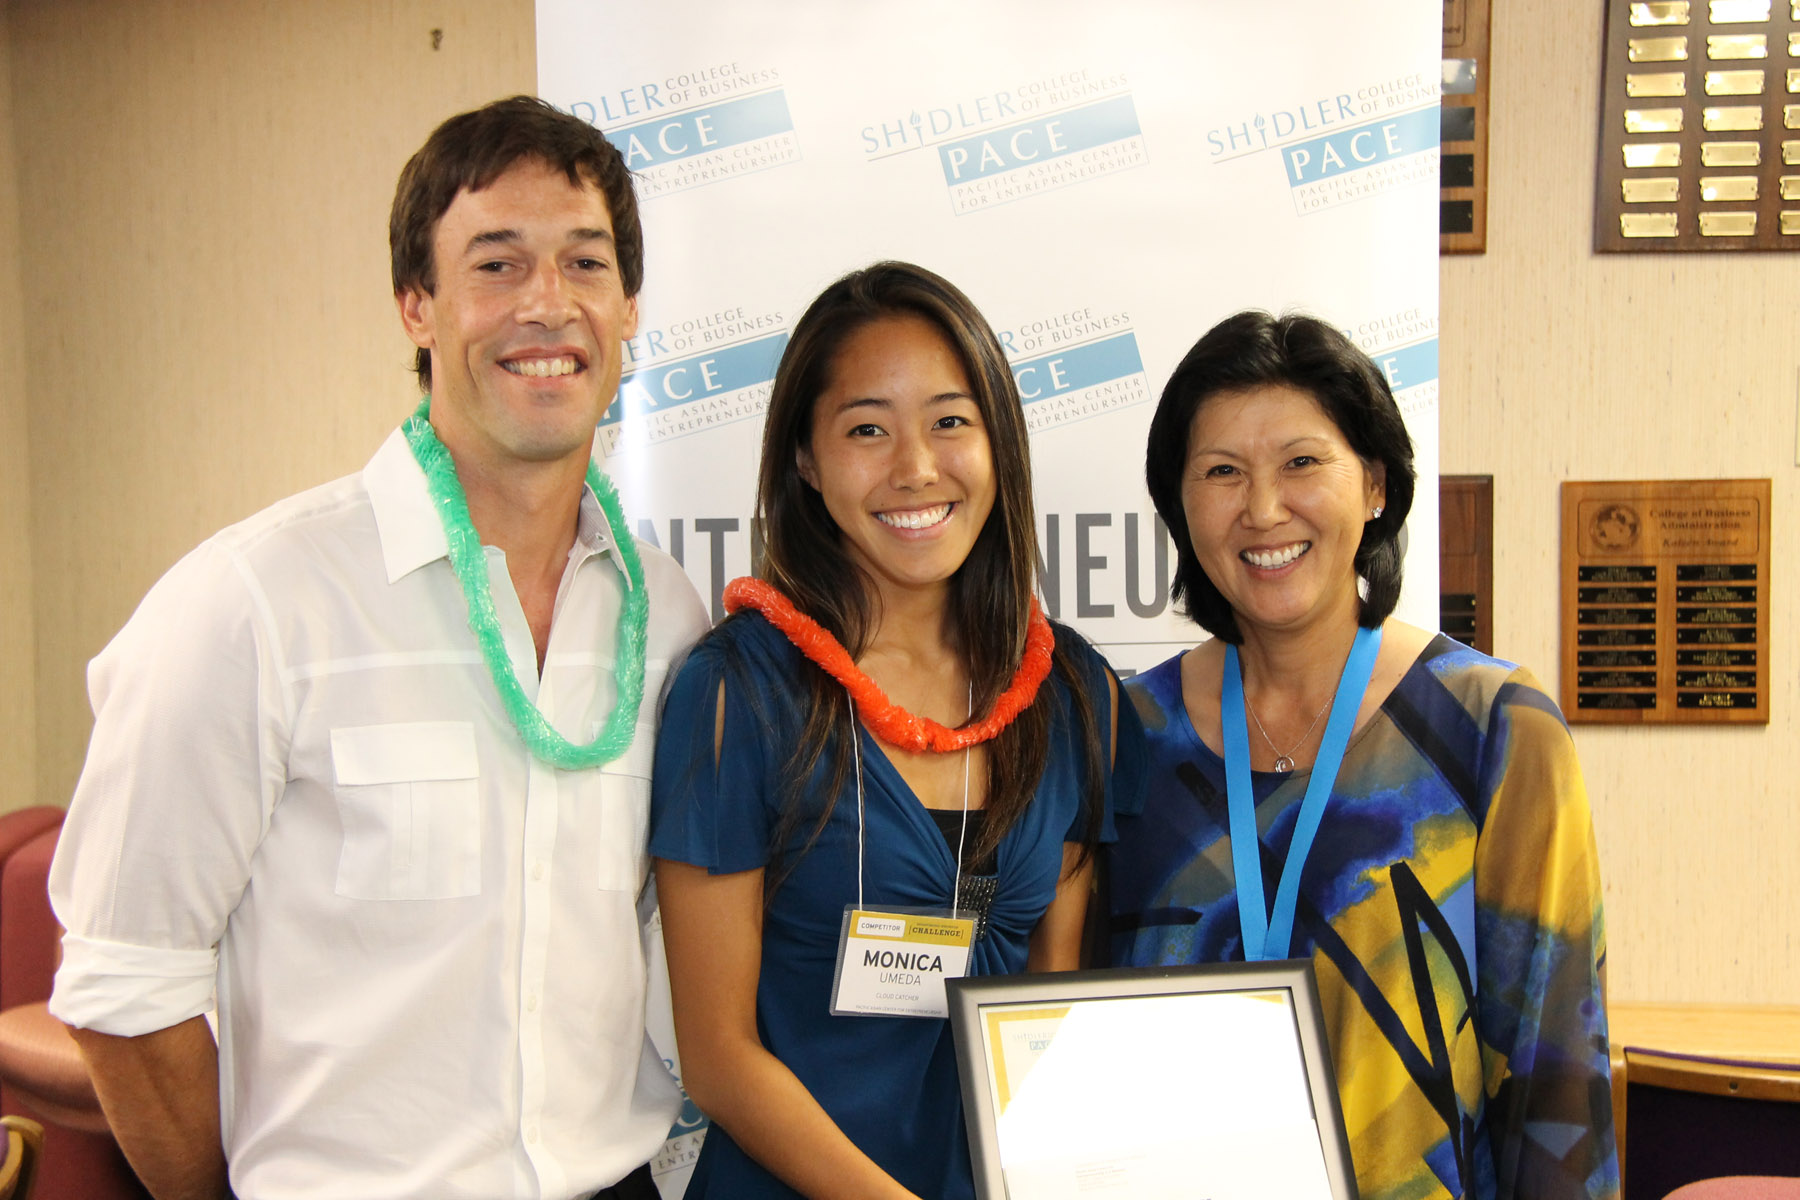 Francis Newton Parks, III and Monica Umeda accept the first place prize in the Biomimicry-themed Breakthrough Innovation Challenge from PACE executive director Susan Yamada (far right).